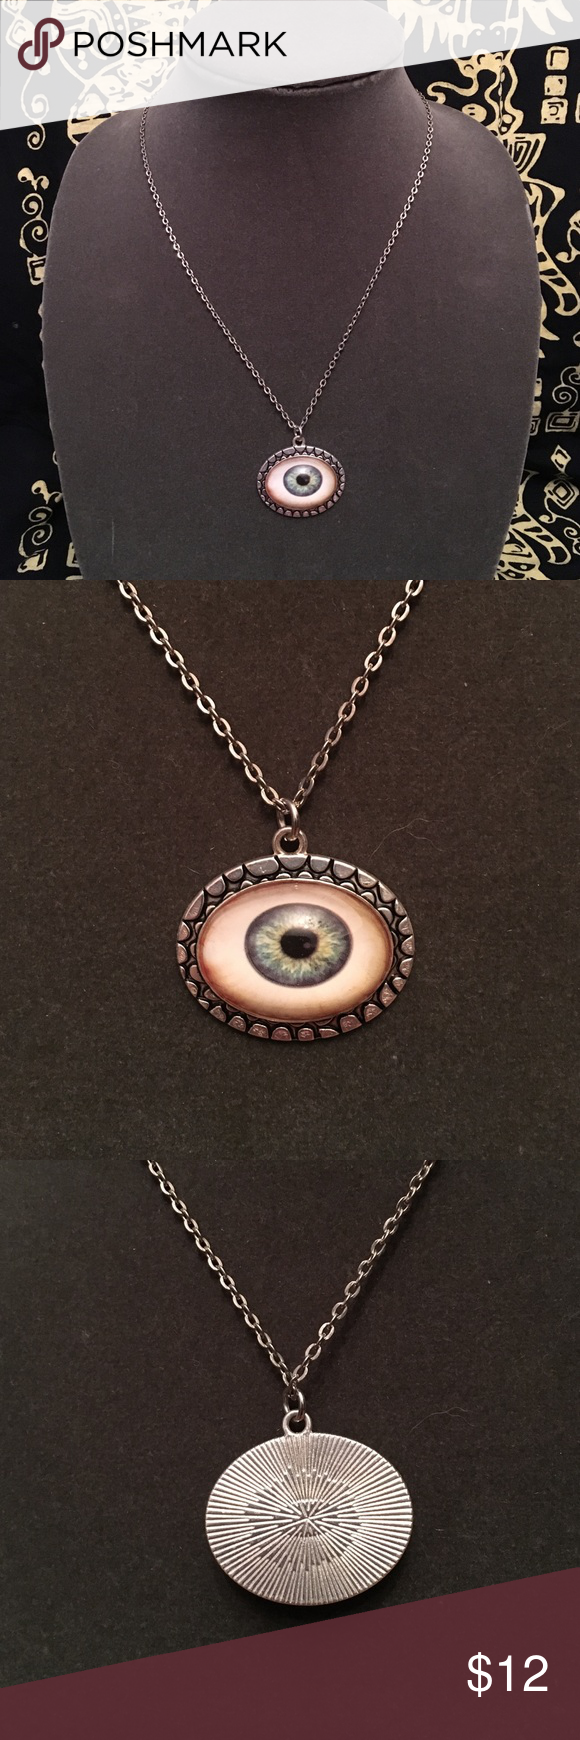 eyeball piece necklace flashing fleyeball be beaded